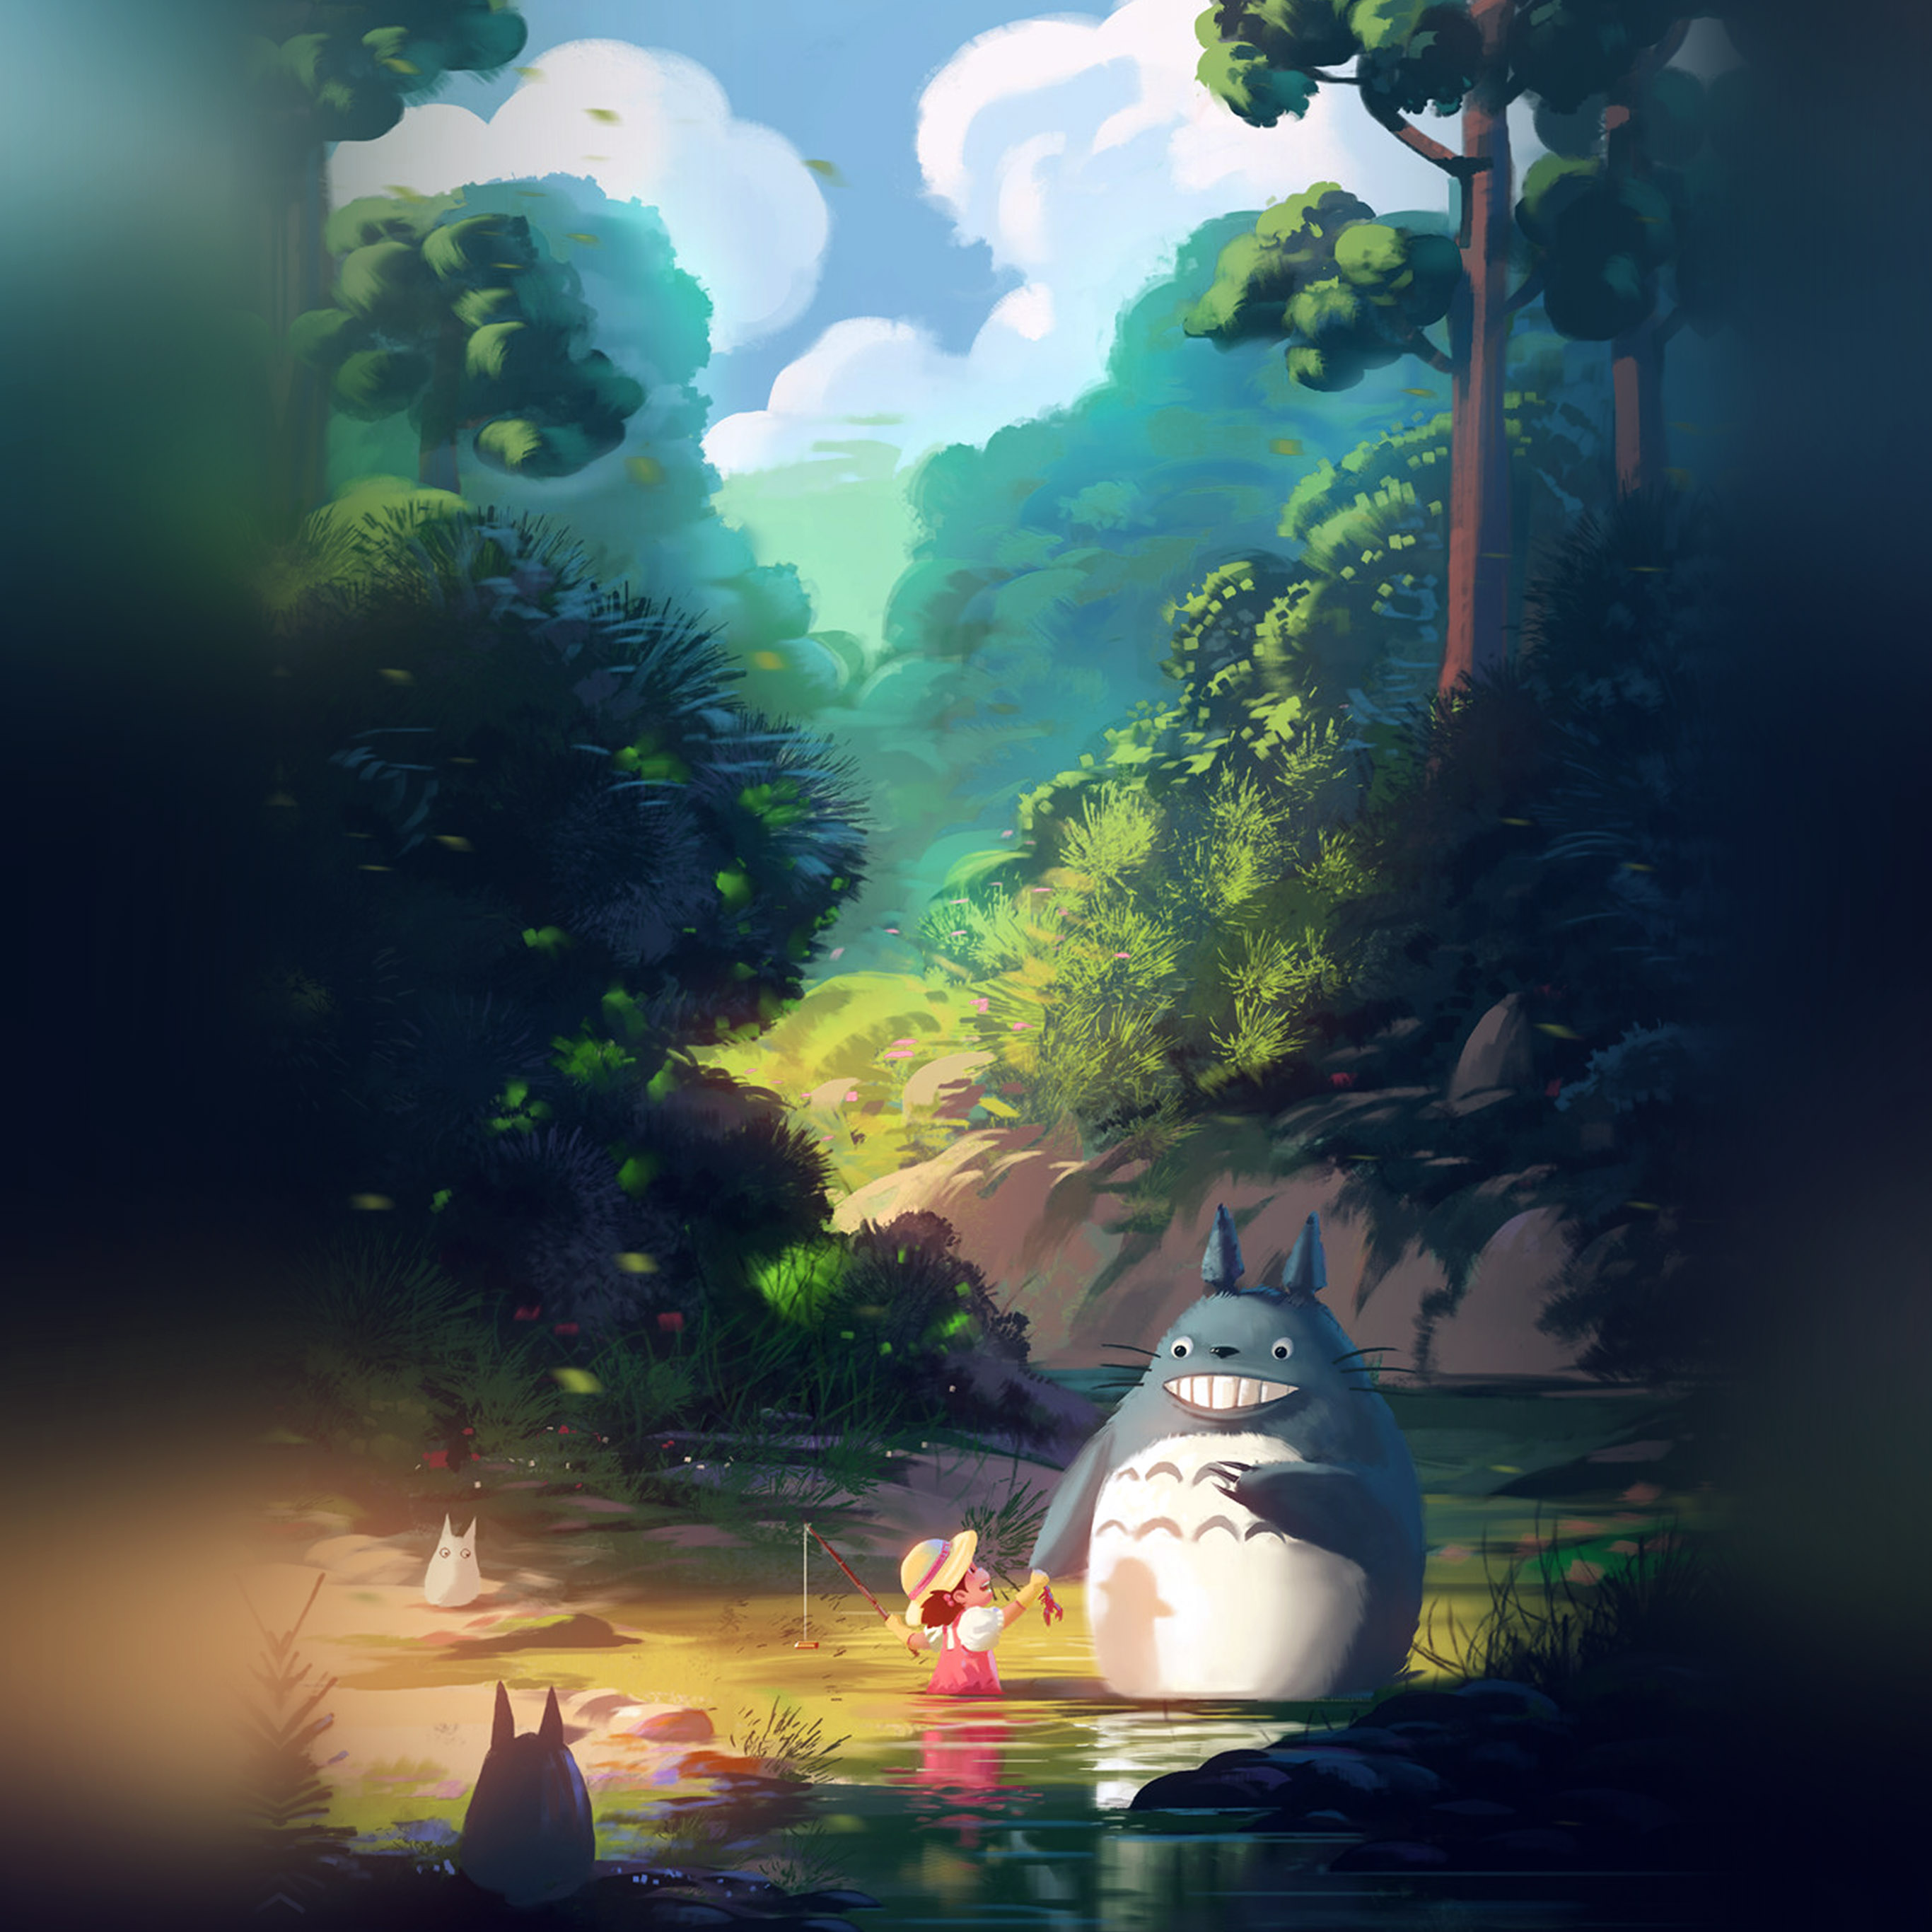 Galaxy S4 Fall Wallpaper Papers Co Android Wallpaper Av34 Totoro Anime Liang